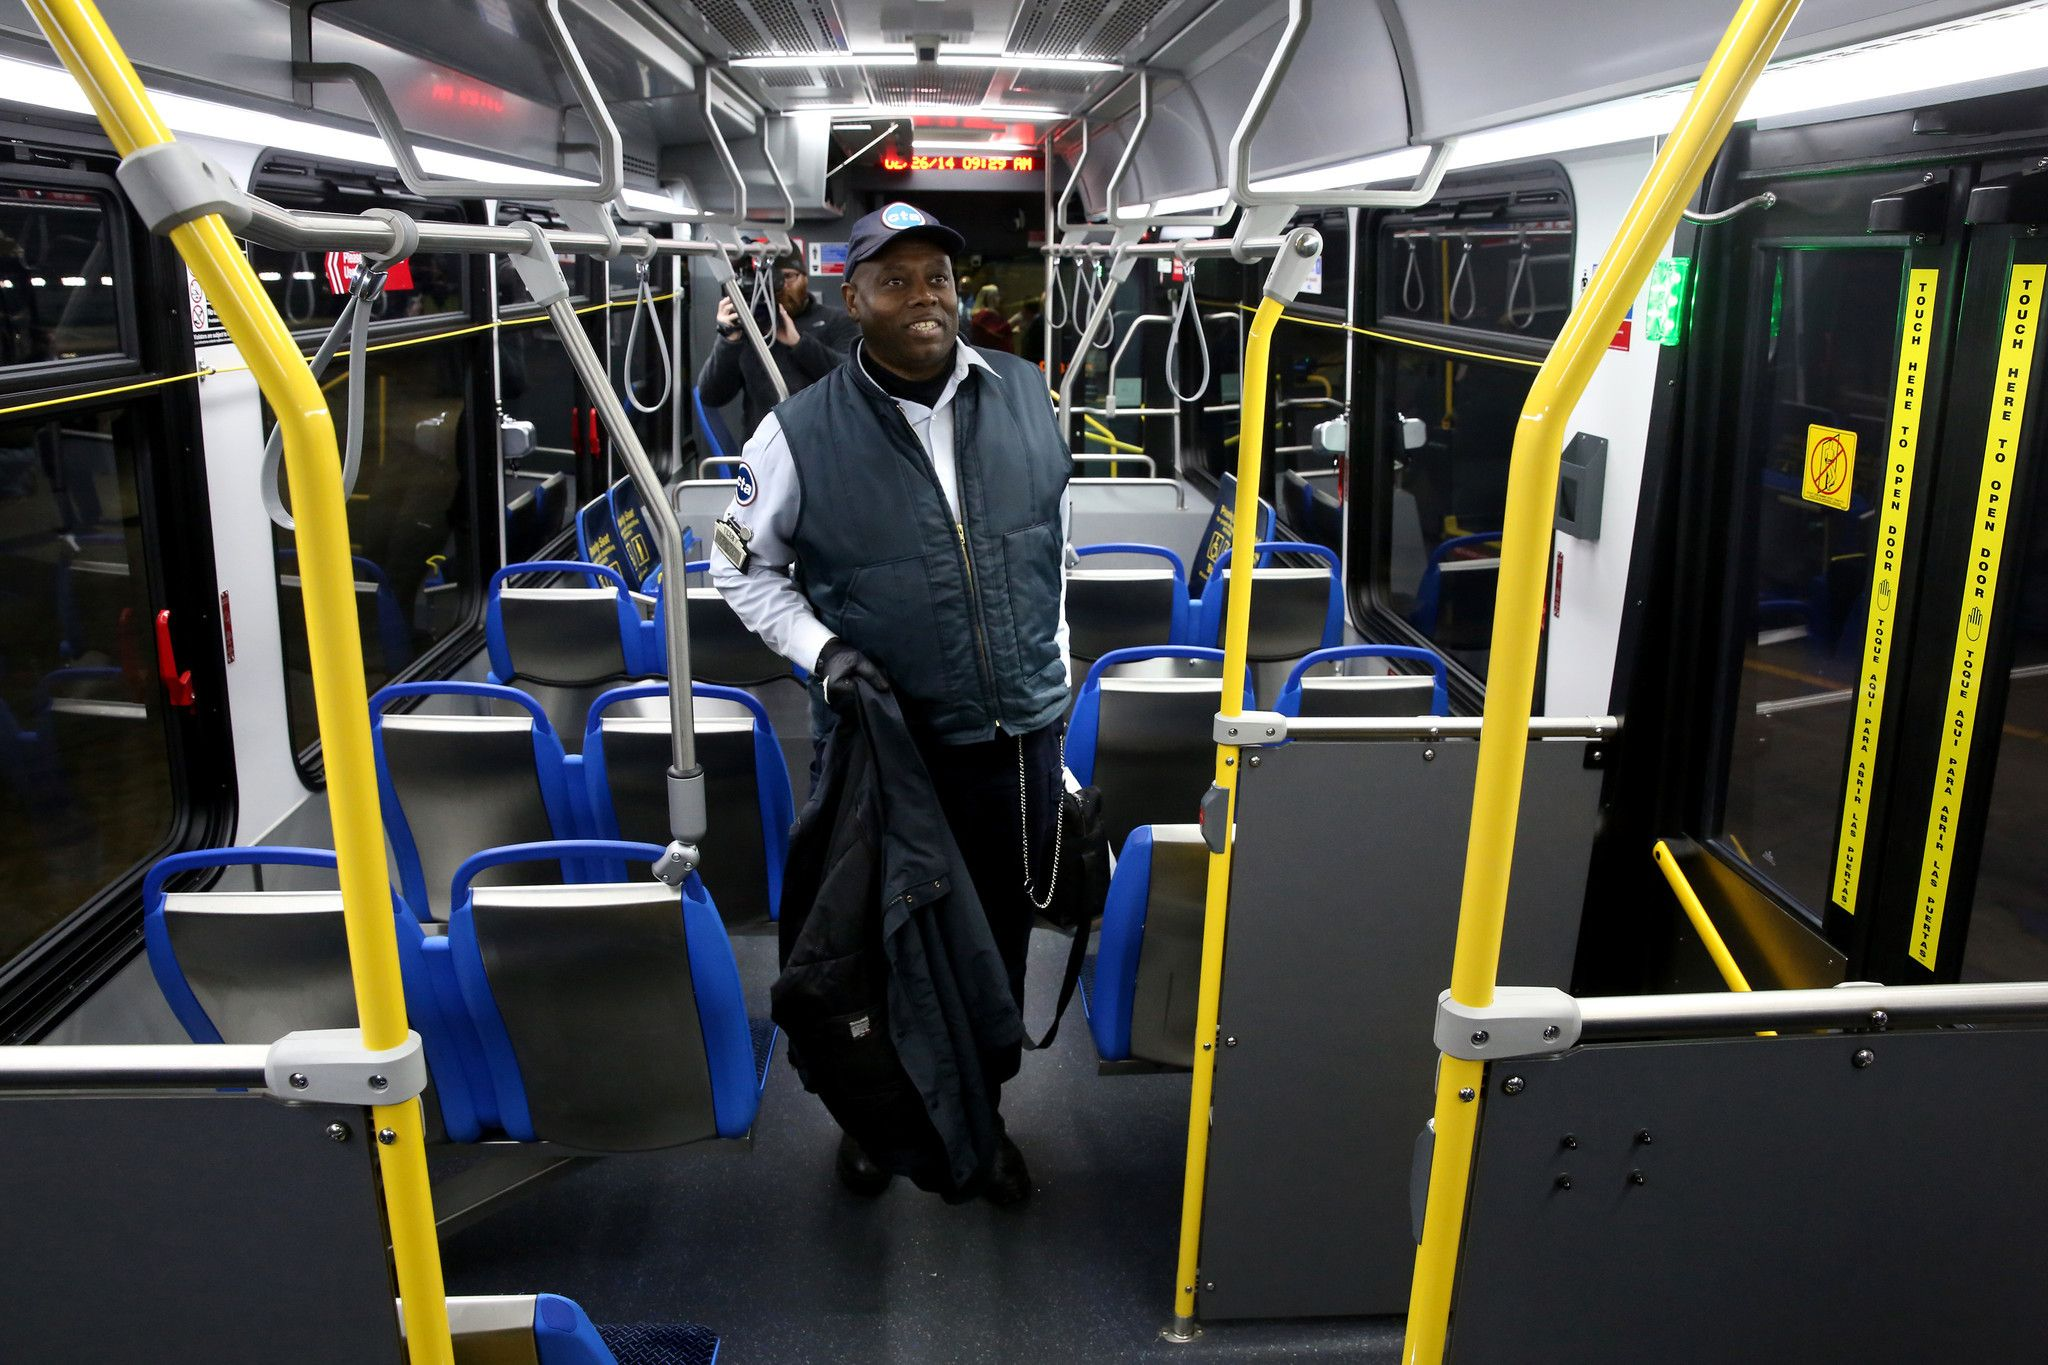 The CTA is testing a prototype of 300 new buses that will